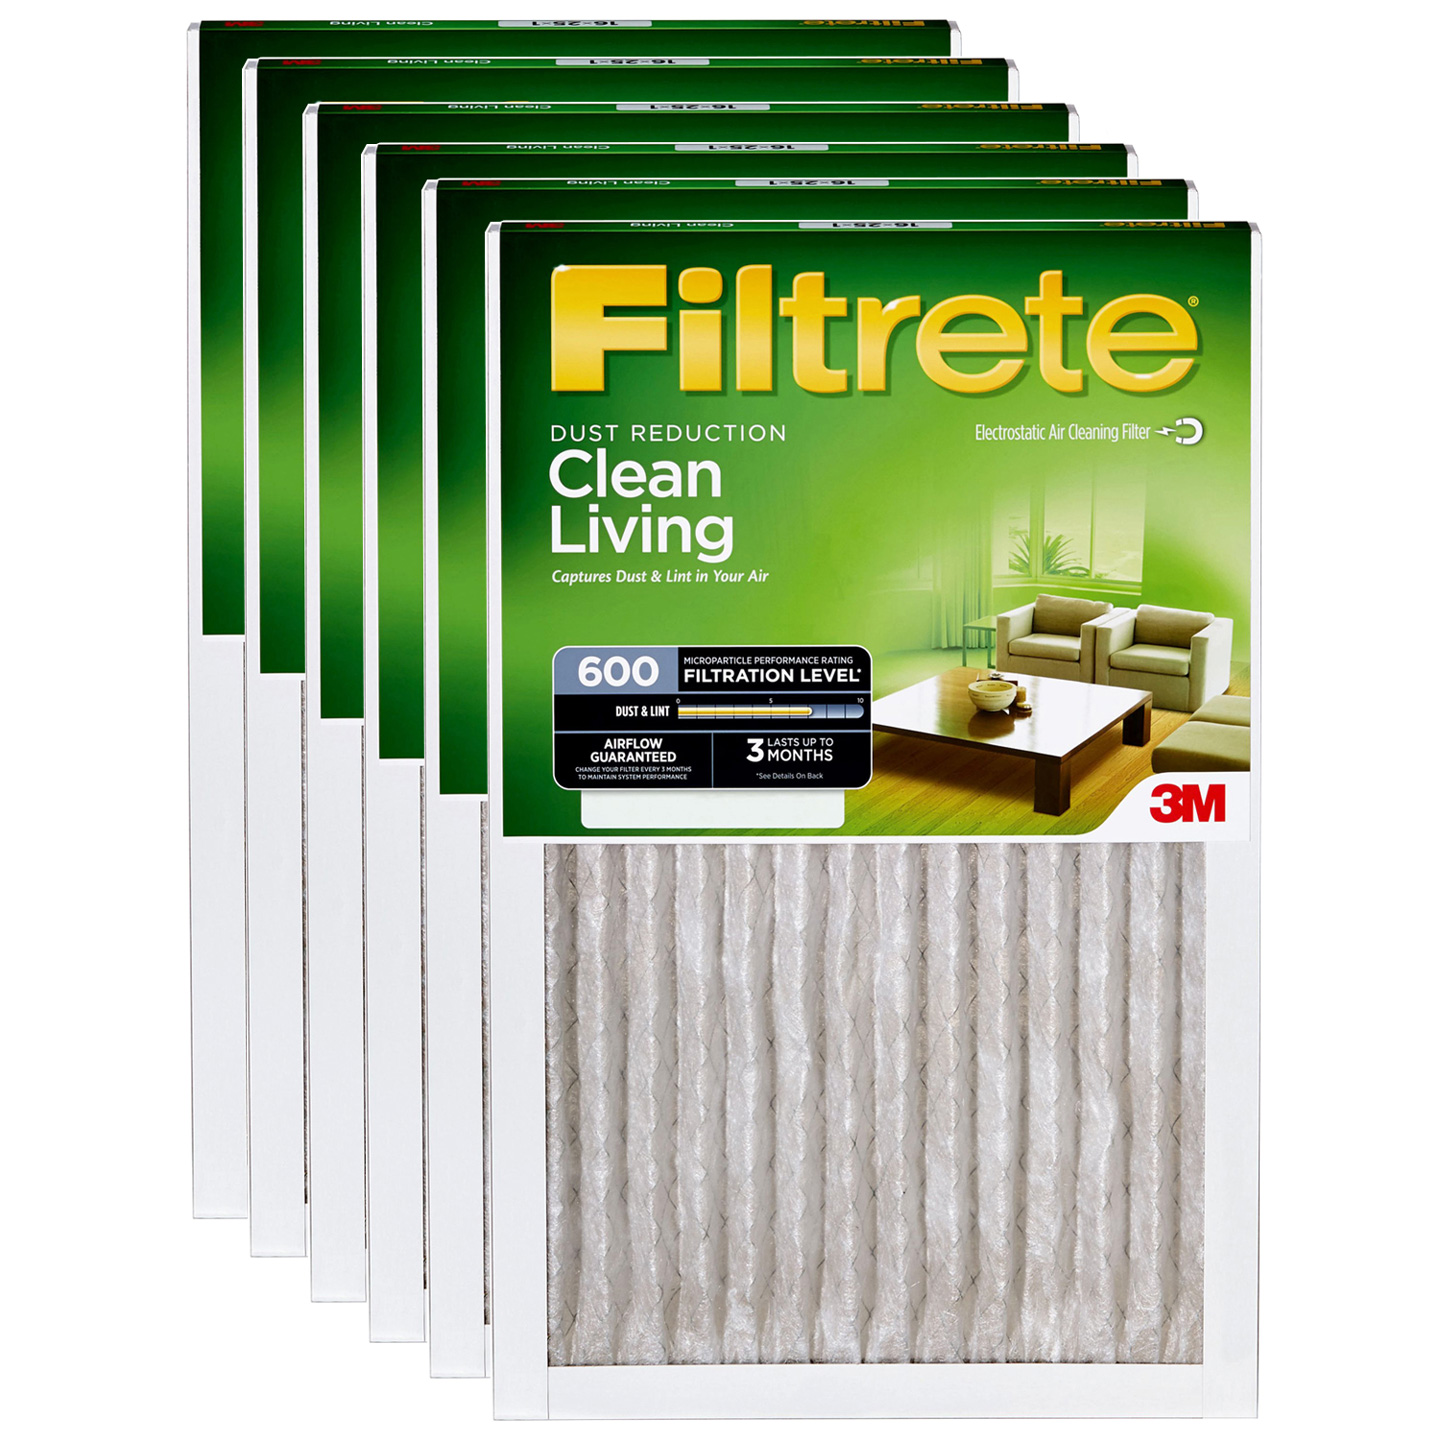 12x12x1 3M Filtrete Dust and Pollen Filter (6-Pack) FILTRETE_DUST_12x12x1_6_PACK